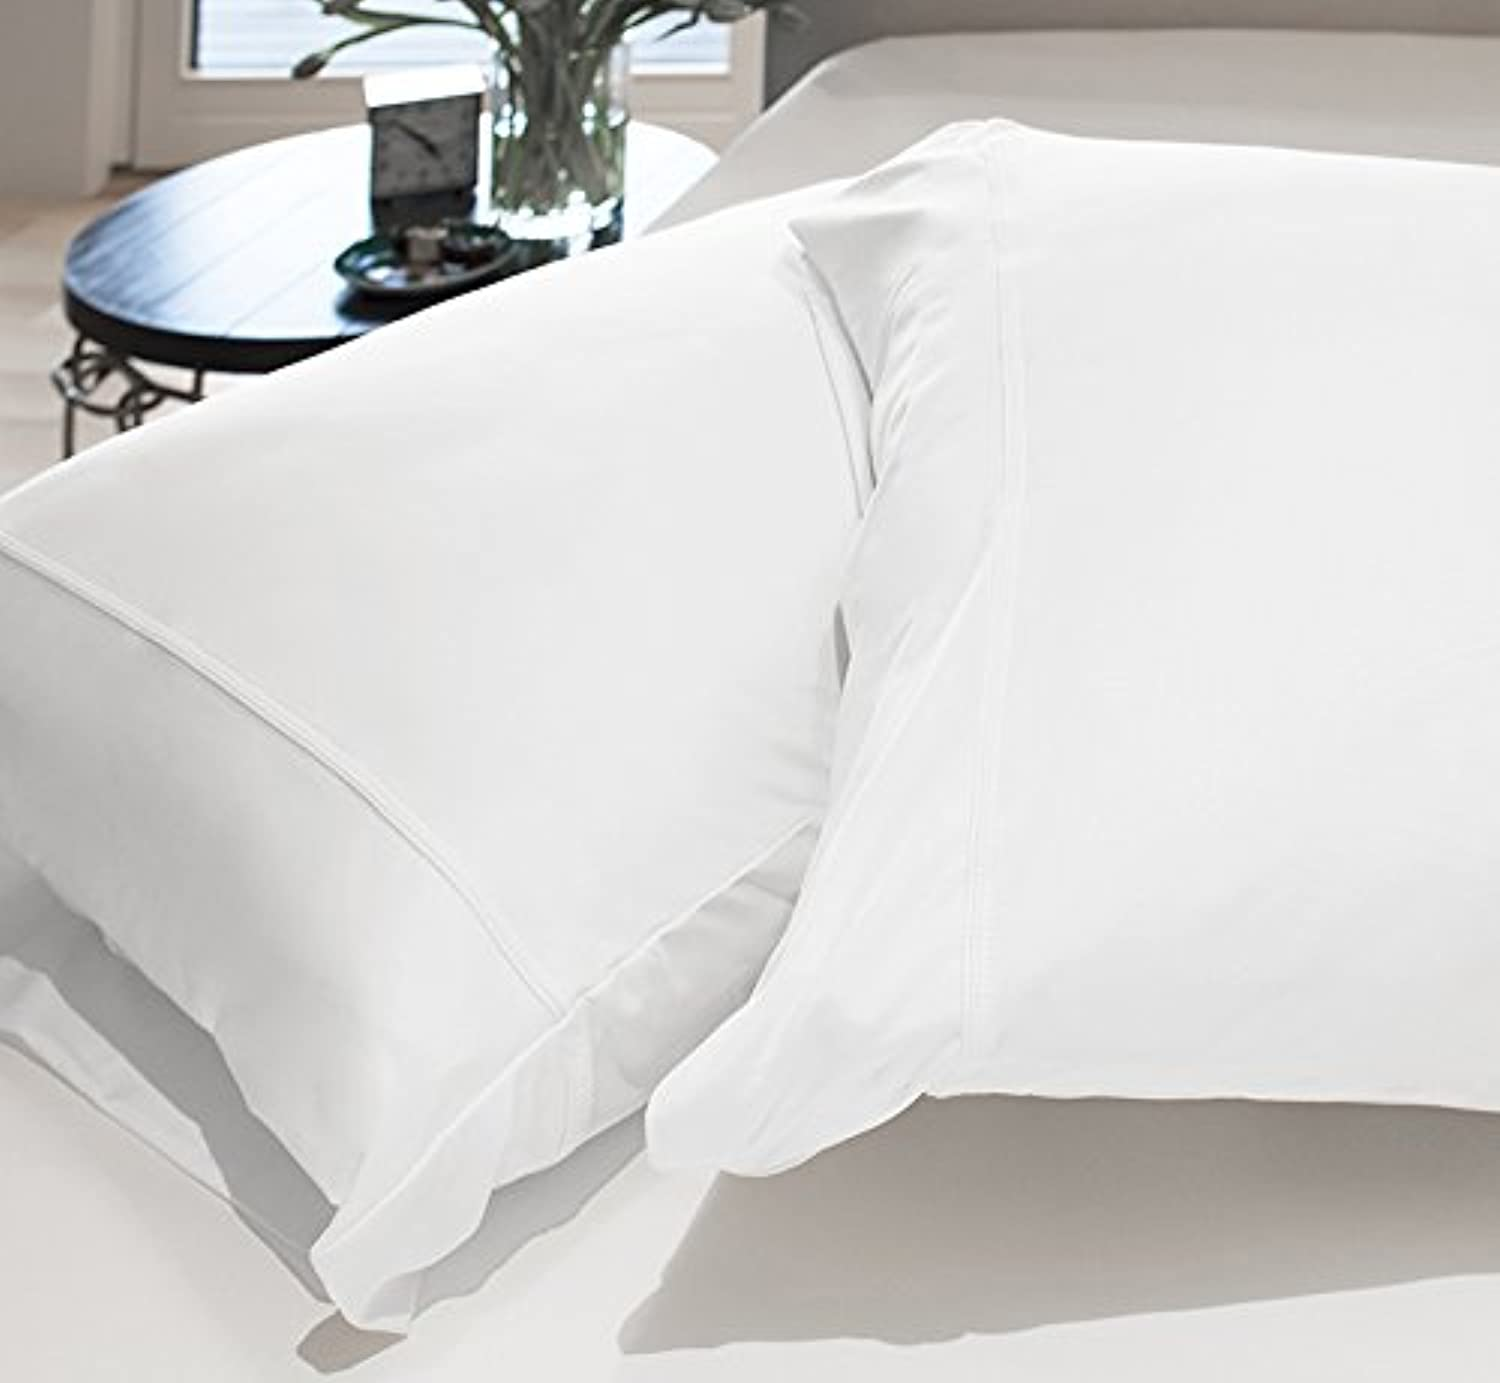 SHEEX Original Performance Pillowcases (Set of 2), Ultra-Soft Fabric Transfers Body Heat and Breathes Better Than Traditional Cotton, Bright White (King)